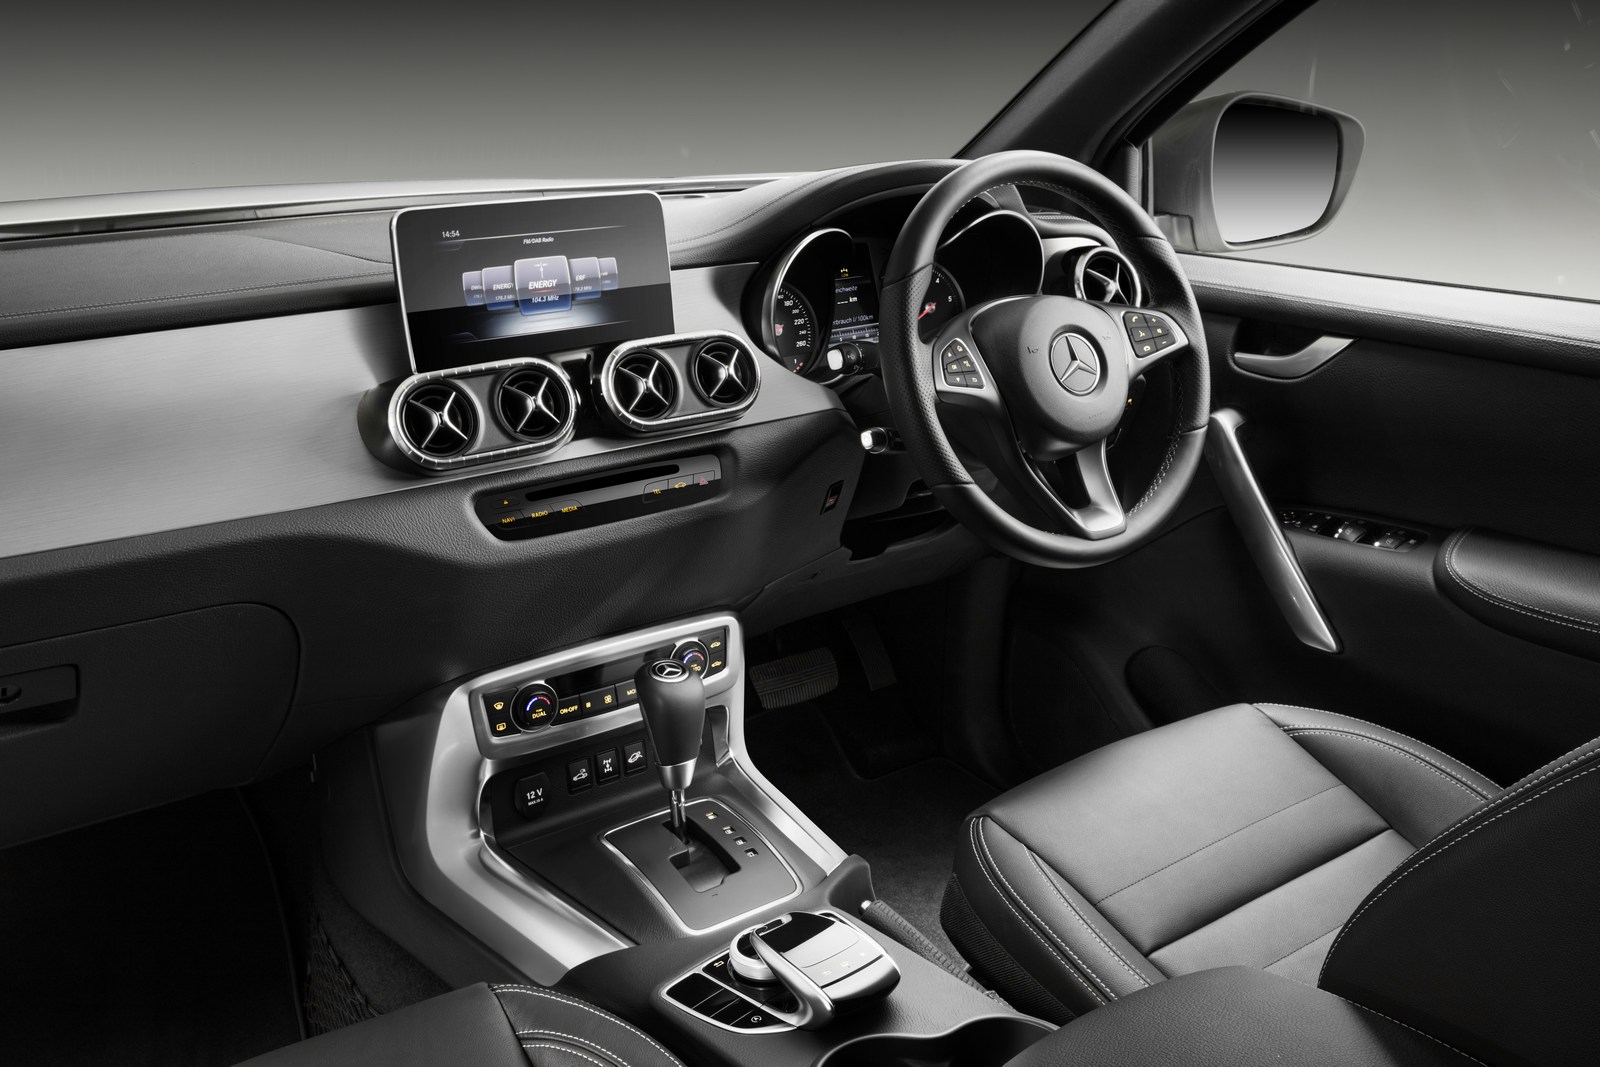 Mercedes-Benz X-Klasse – Interieur, Rechtslenker, Ausstattungslinie POWER 